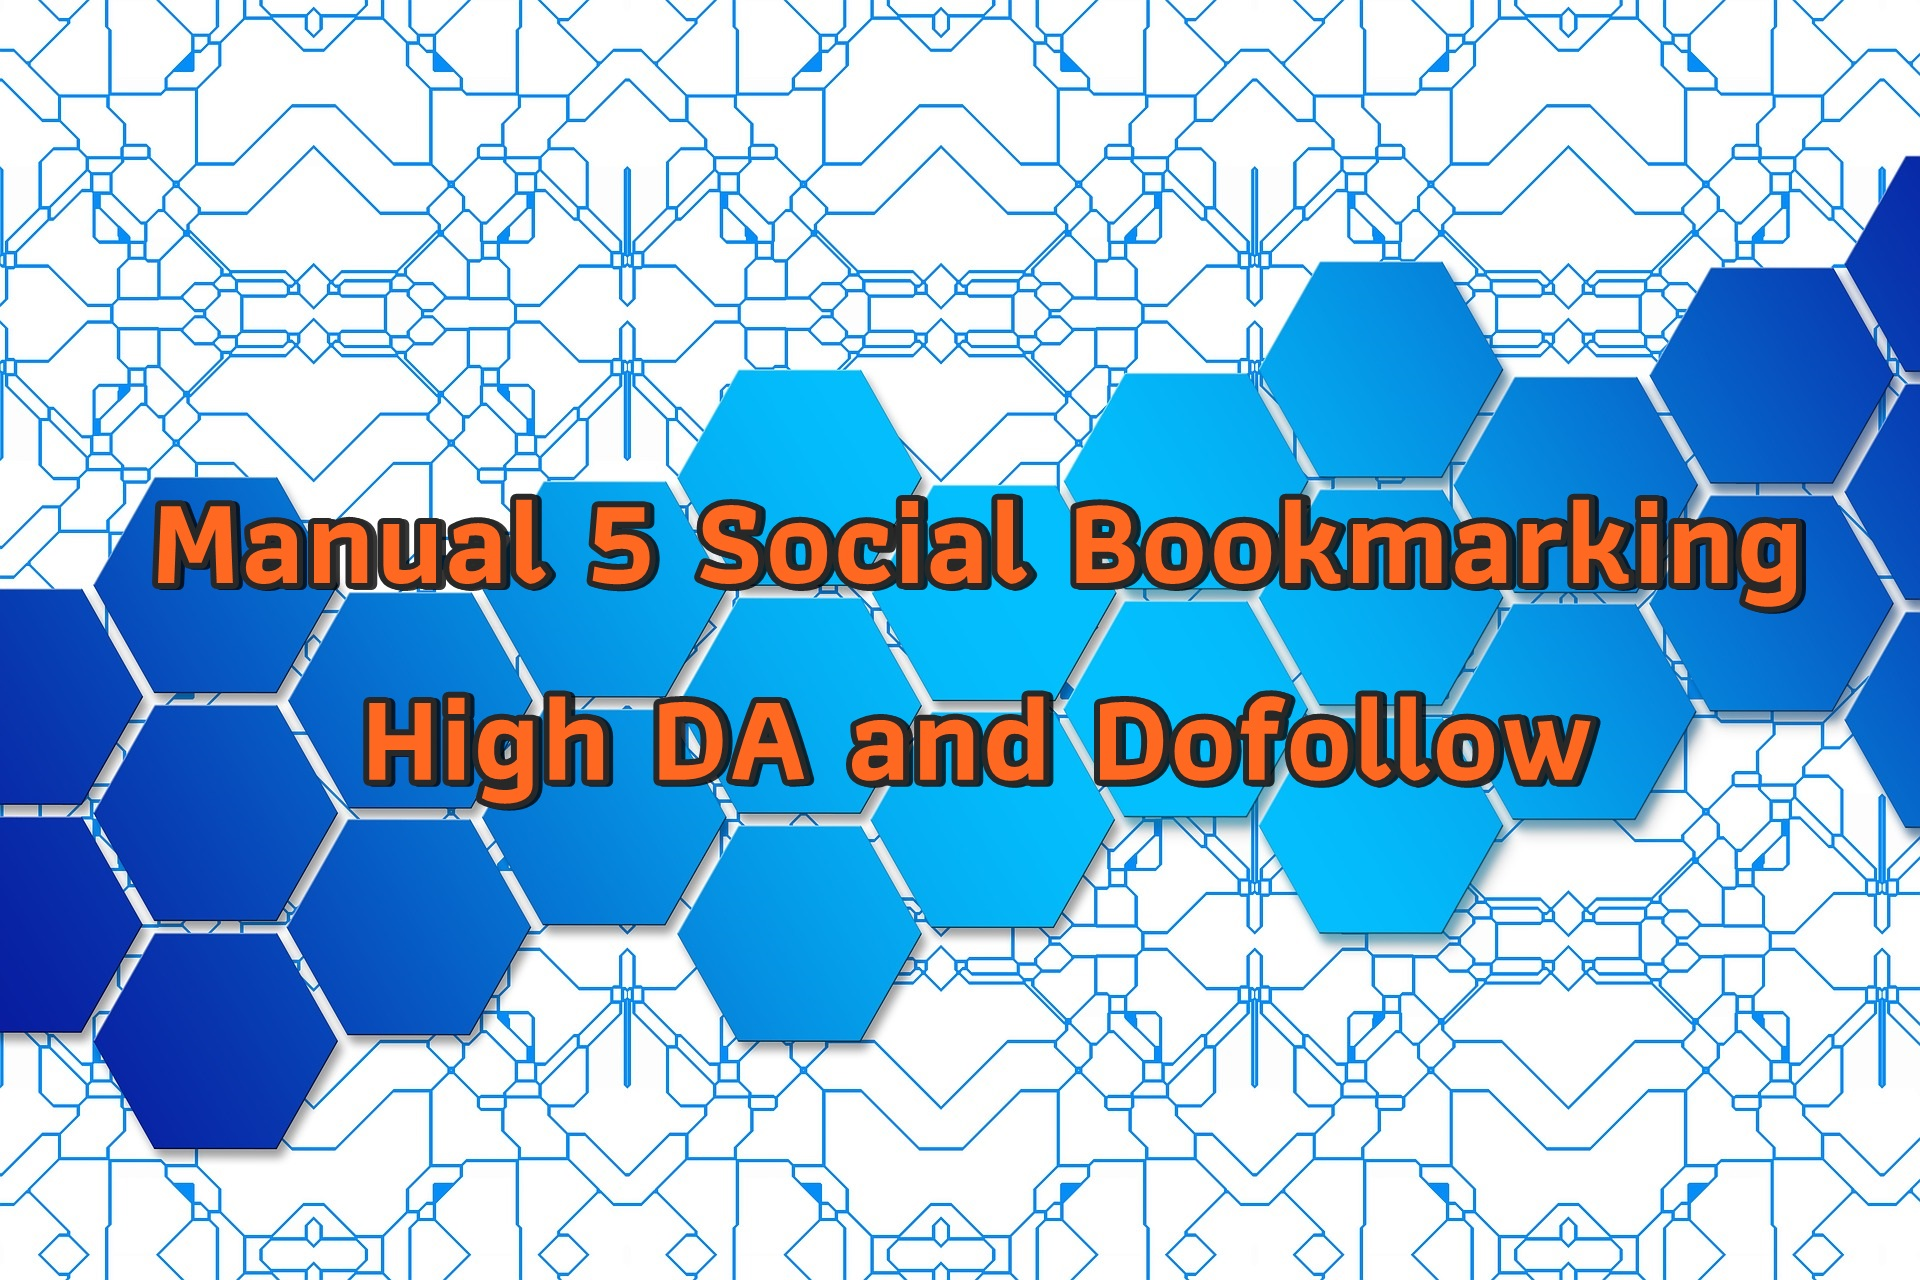 Manual 5 Social Bookmarking High DA and Dofollow